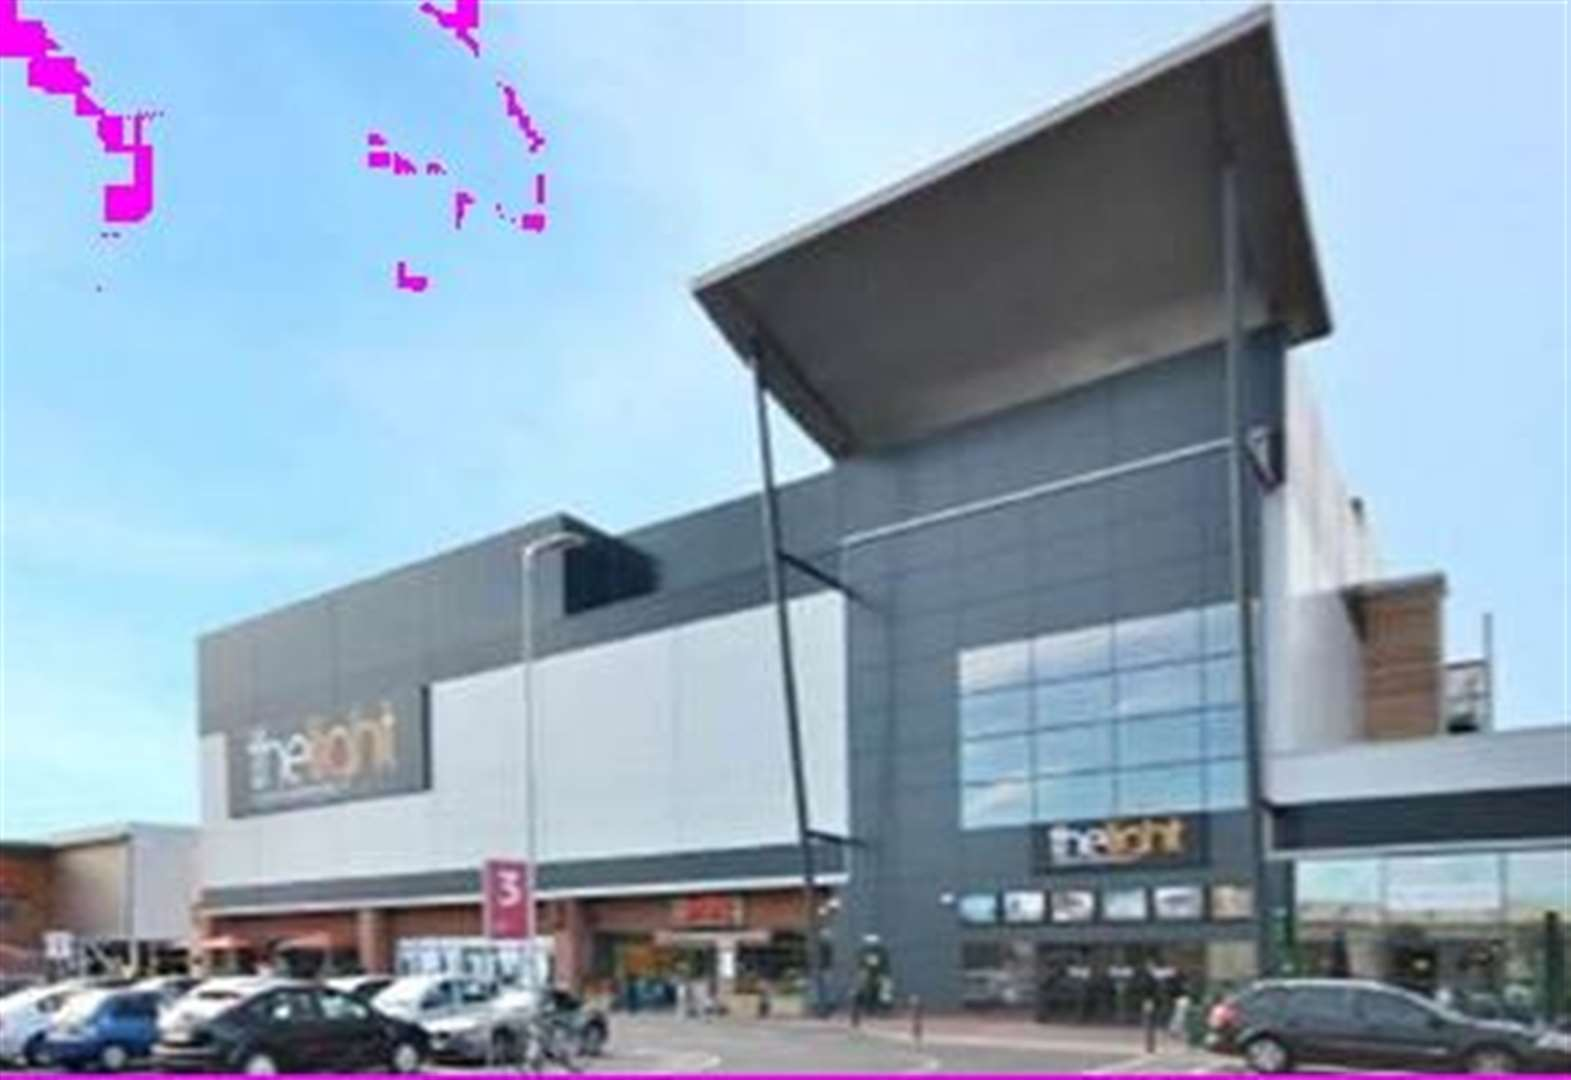 Council pays out £6.9m for town's leisure park which includes a cinema